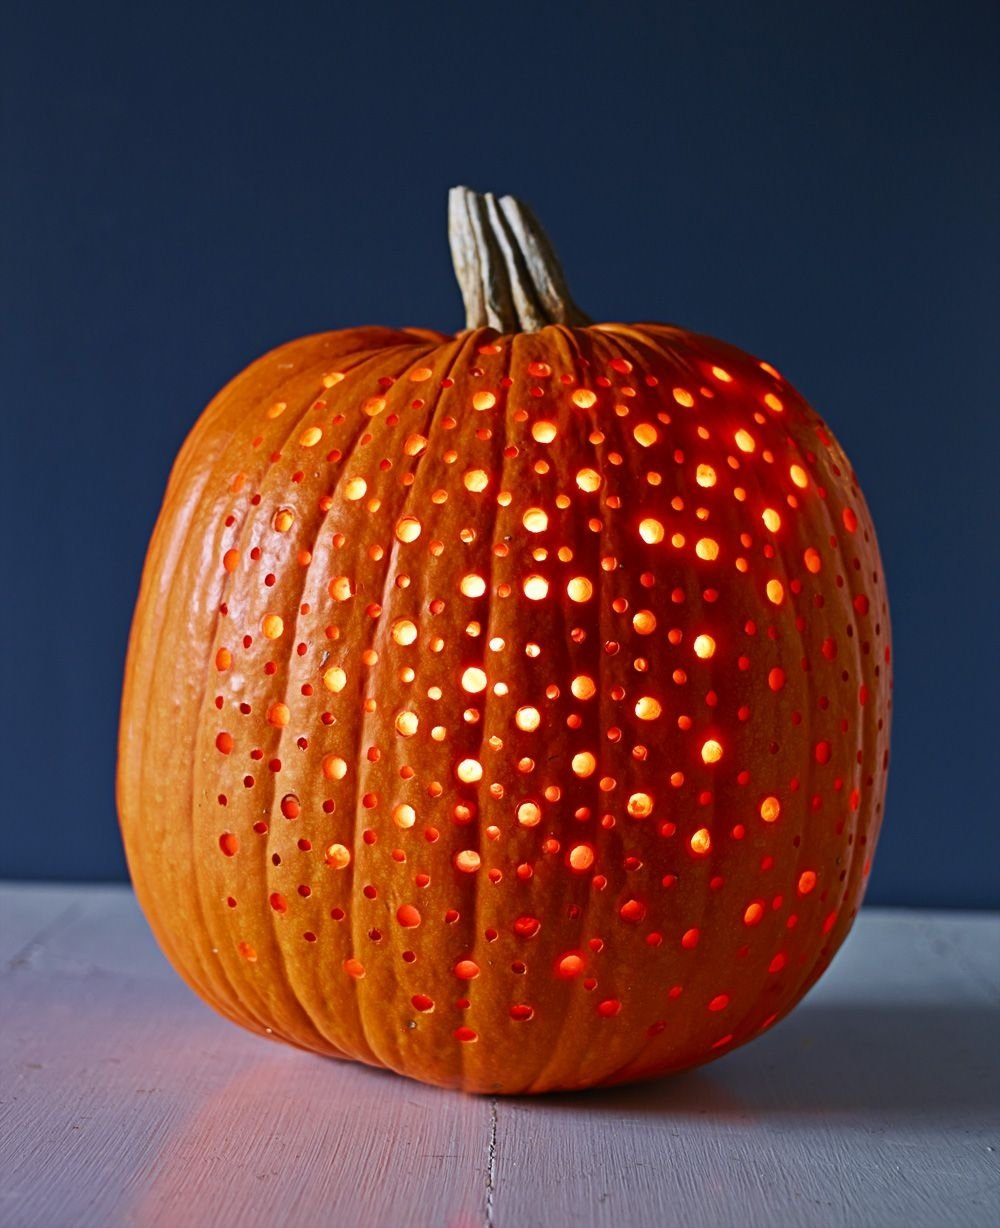 10 Great Good Ideas For Pumpkin Carving 60 pumpkin decorating ideas and designs for halloween pumpkin 2 2021